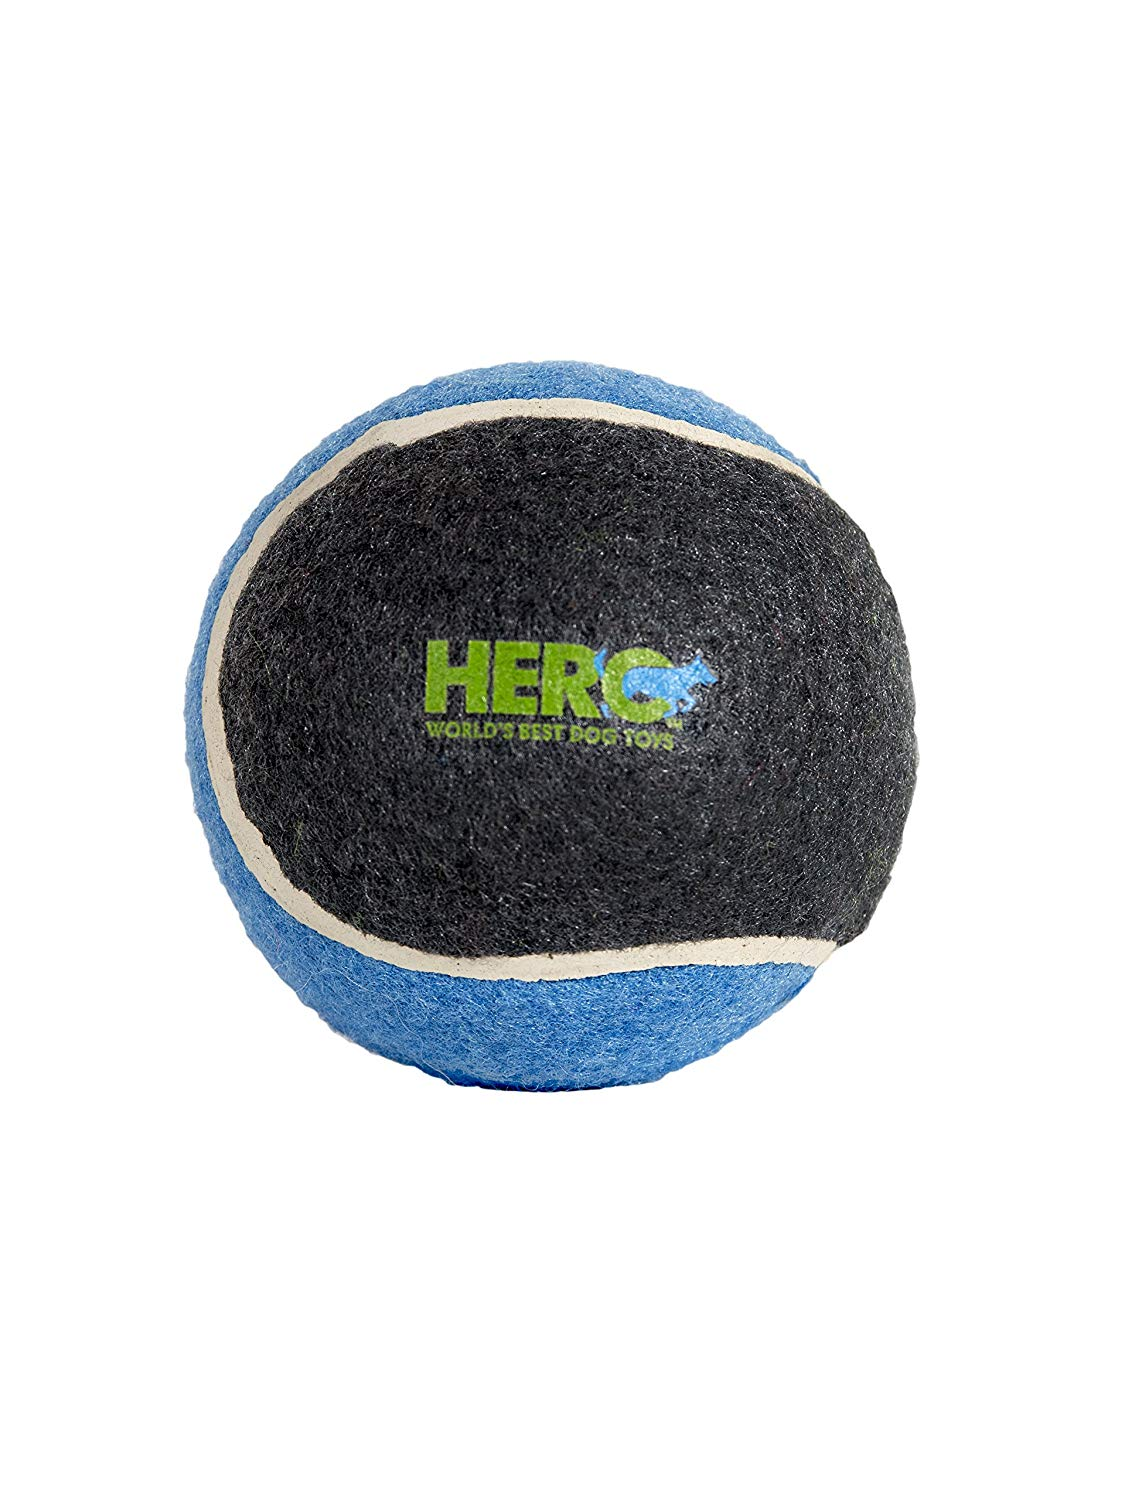 Hero Signature Series Natural Rubber Tennis Ball Dog Toy, Large